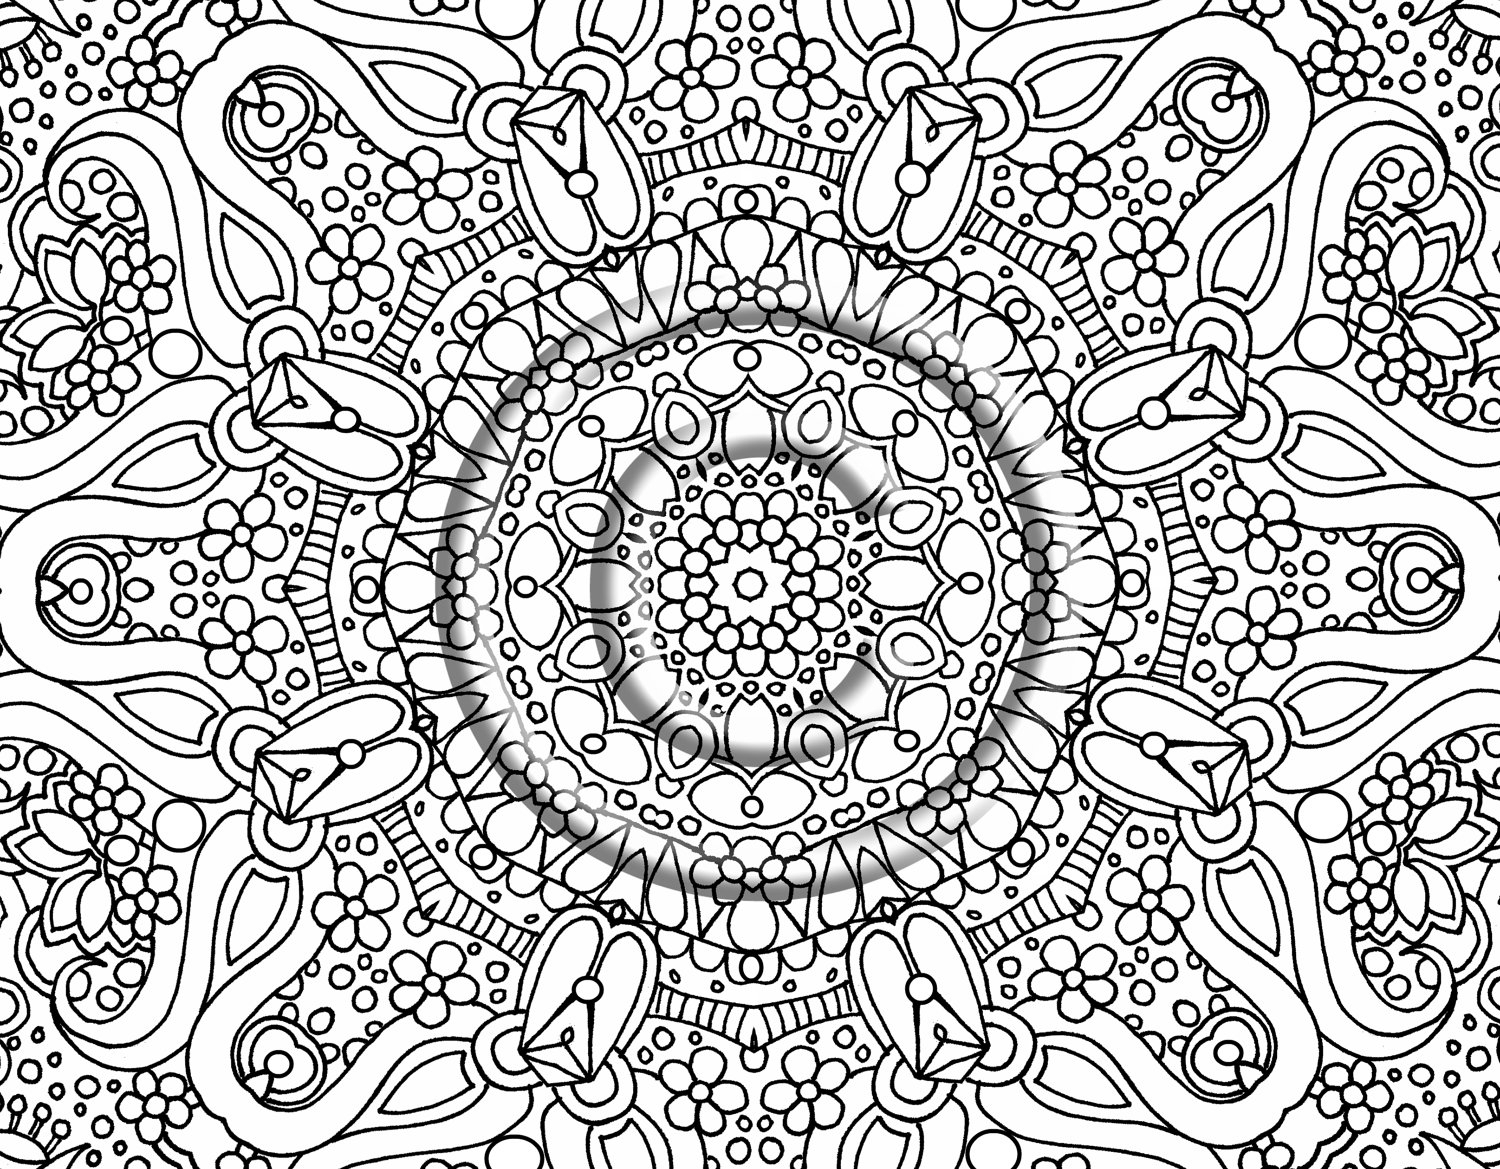 1500x1169 Best Of Difficult Abstract Coloring Pages For Adults Color Bros